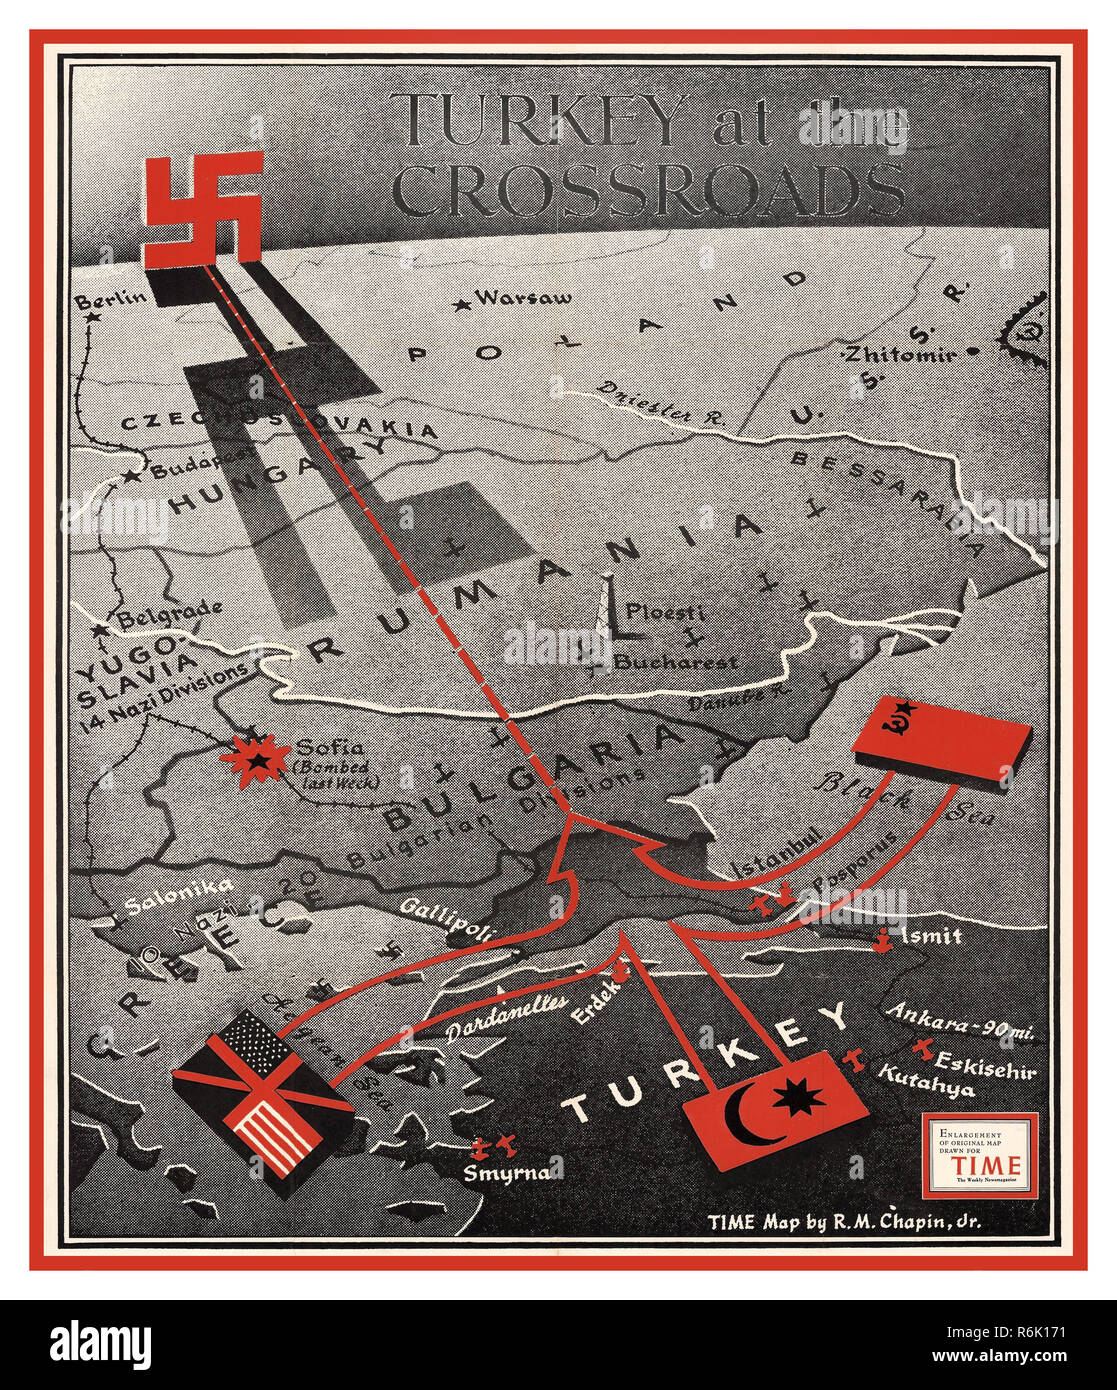 Vintage WW2 1943 press article 'Turkey at the Crossroads', published in Time Magazine DEC 20th 1943 Turkey remained neutral until the final stages of World War II and tried to maintain an equal distance between both the Axis and the Allies until February 1945, when Turkey entered the war on the side of the Allies against Germany and Japan. - Stock Image